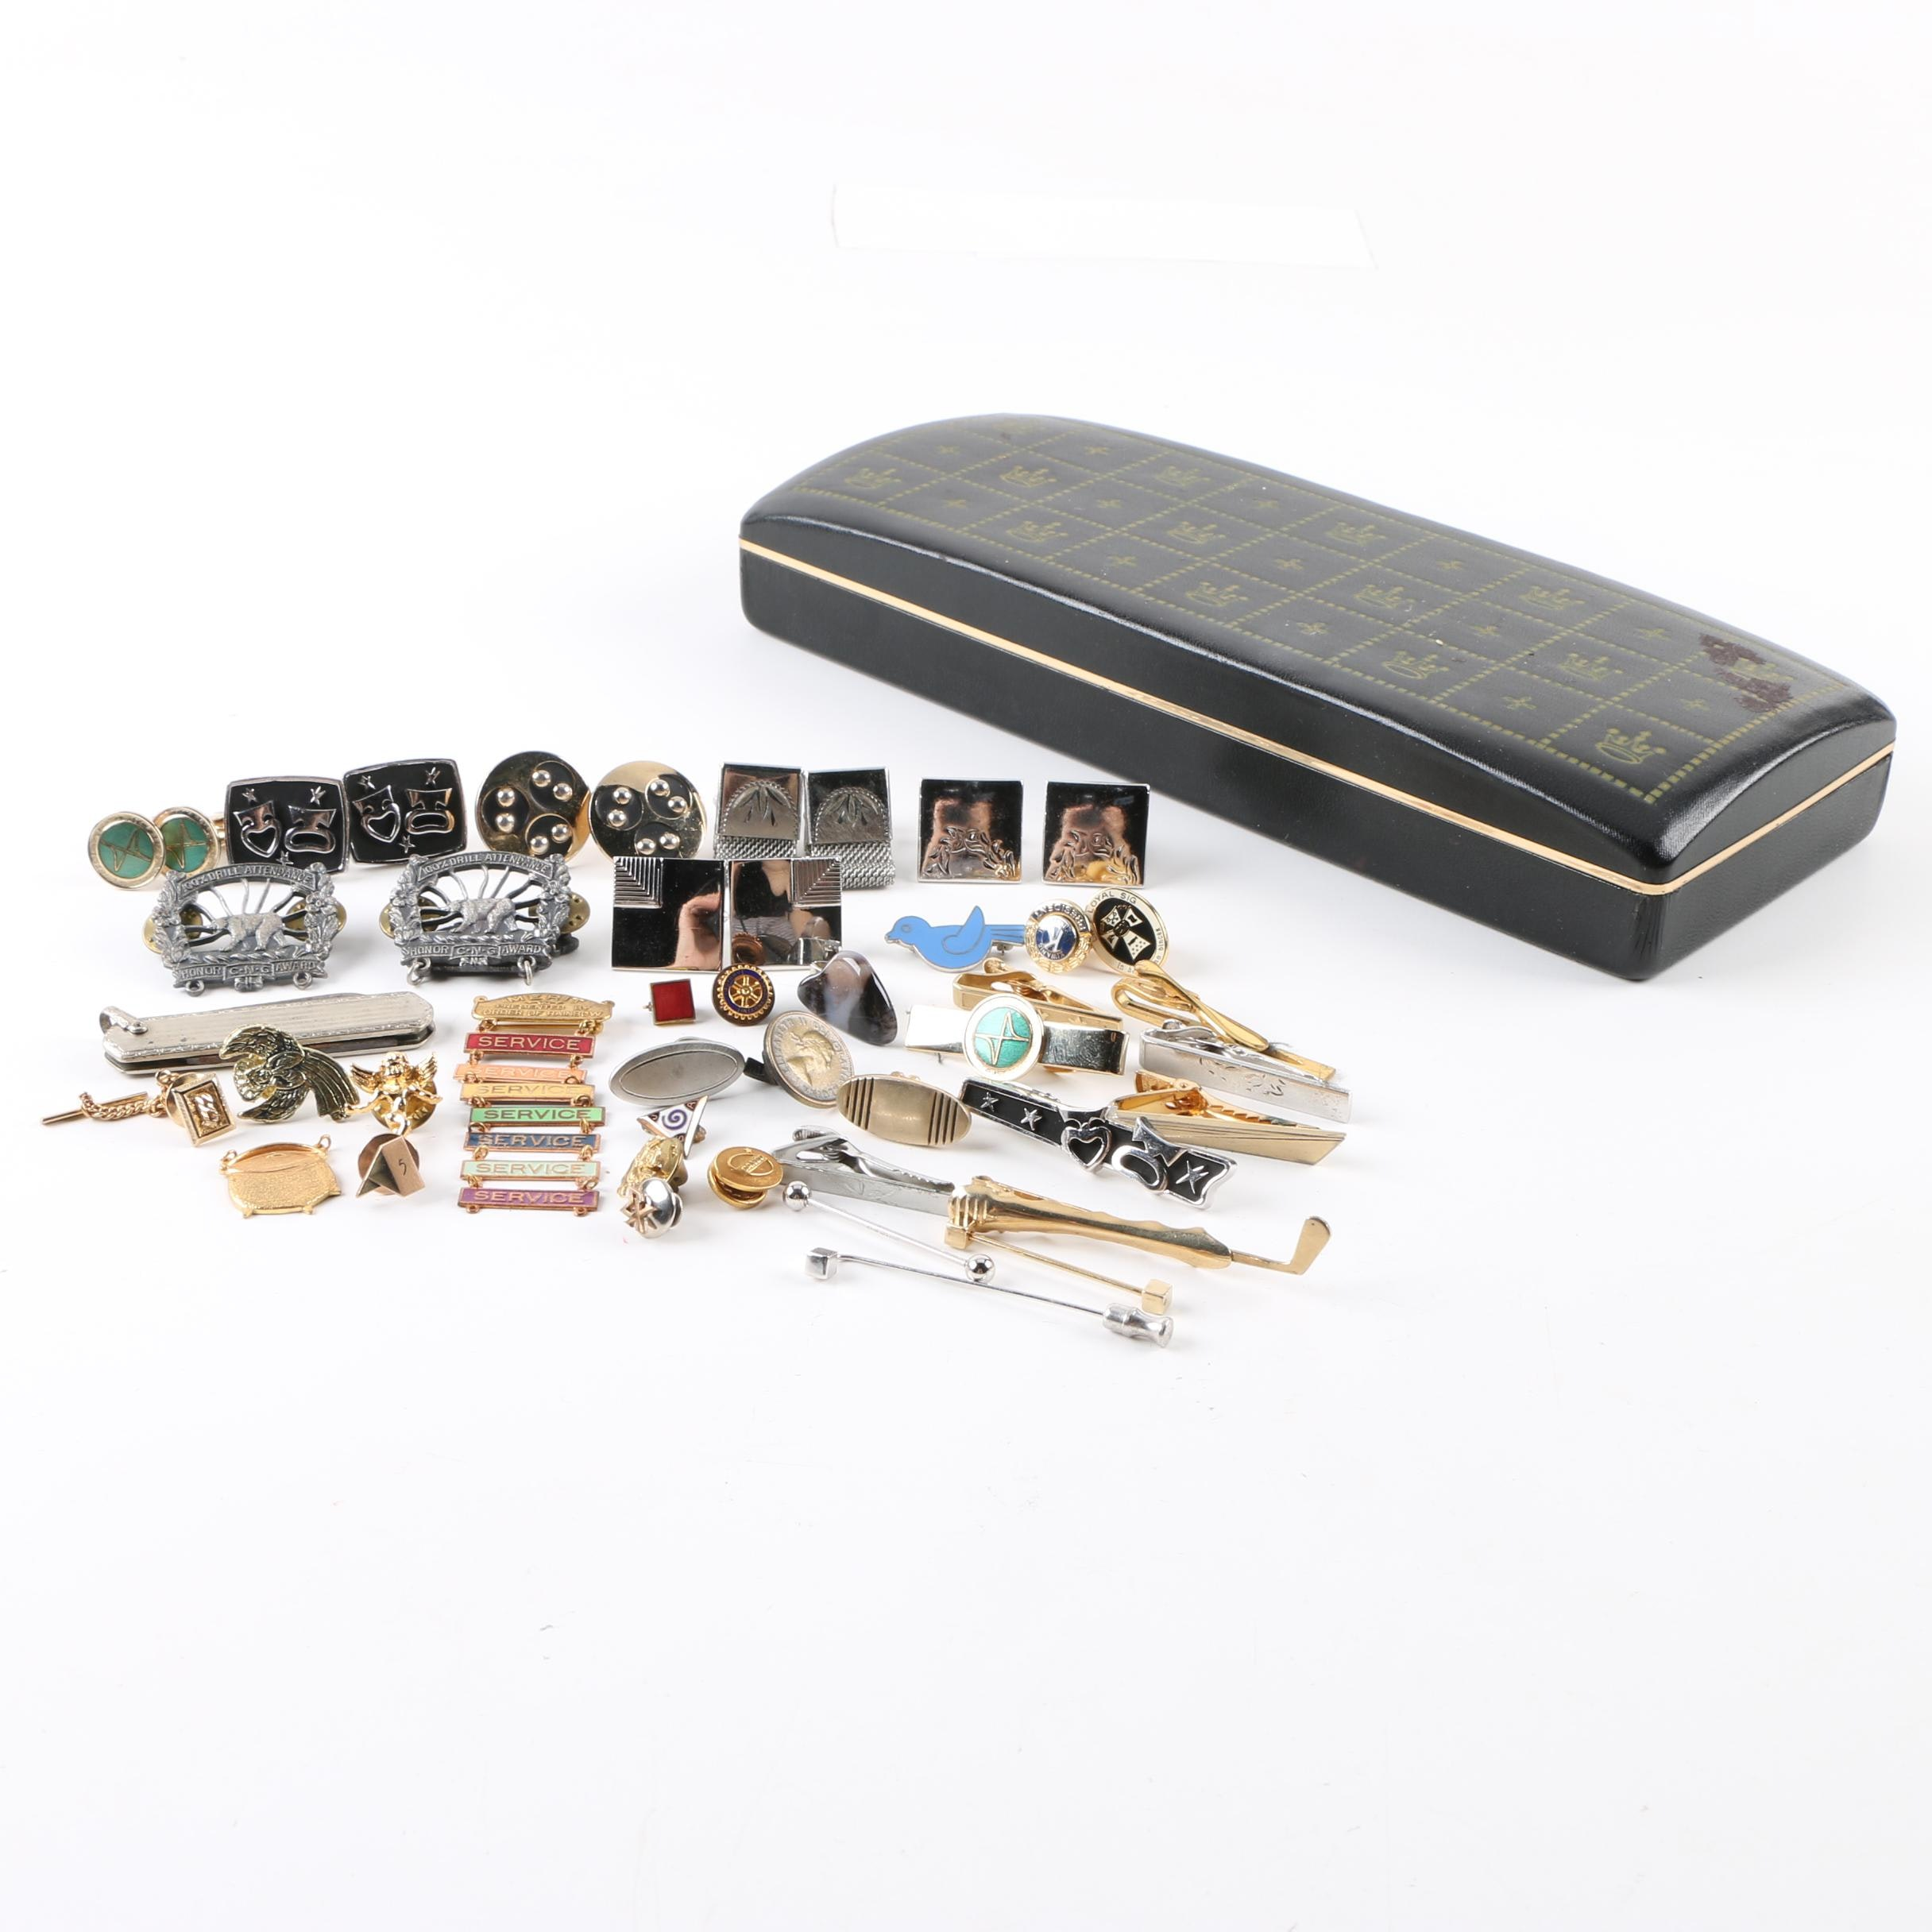 Assortment of Men's Jewelry Accessories with Agate and Enamel in Case